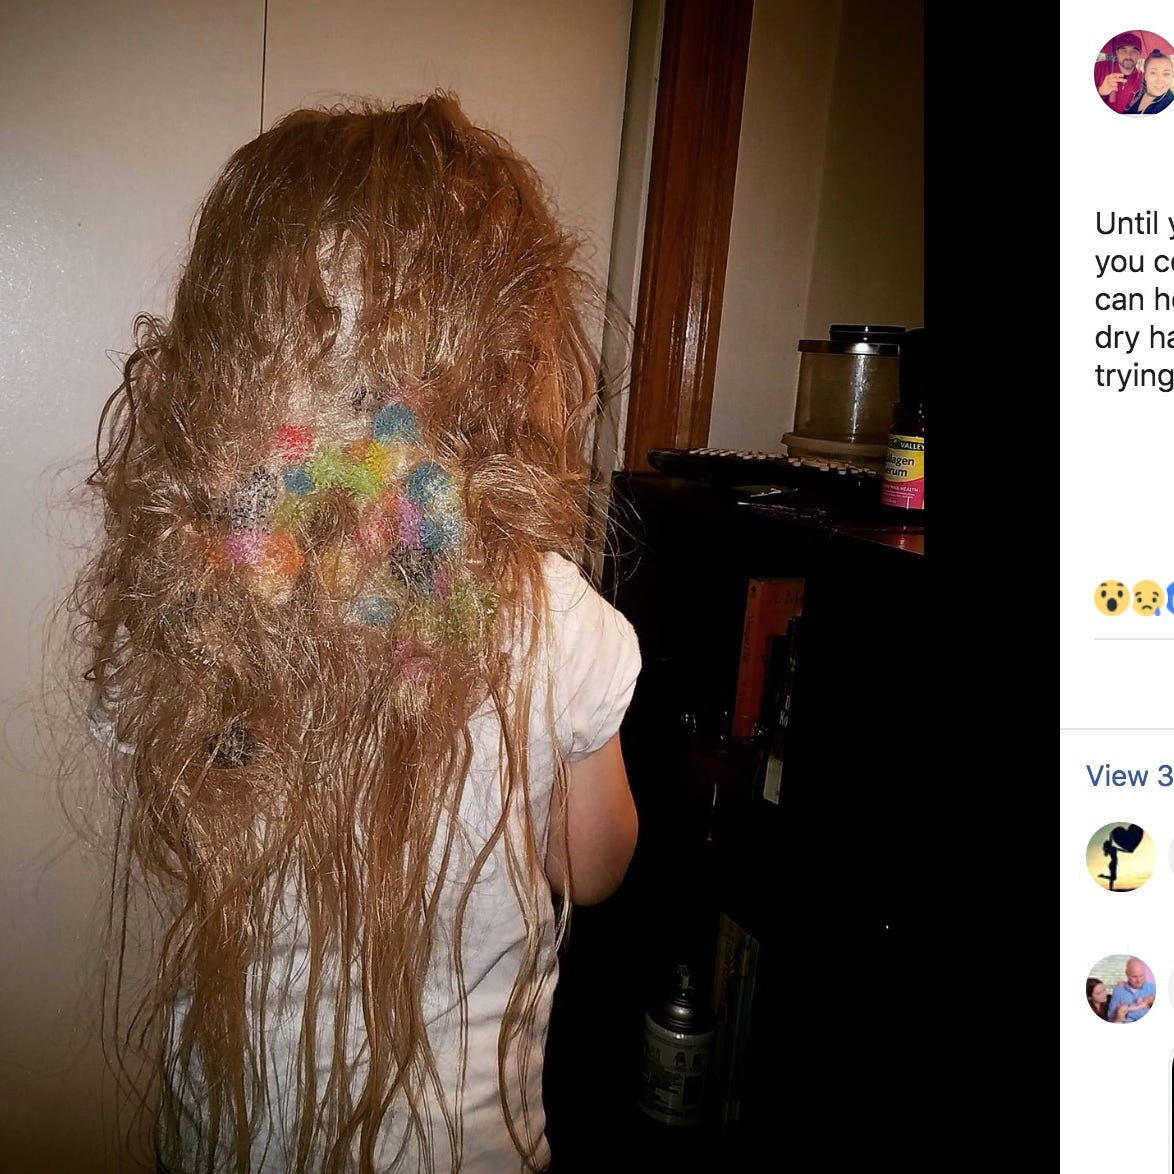 More than 50 Bunchems, colorful toy balls, were tangled in an Arkansas girl's hair. Her parents are now warning about the toys.